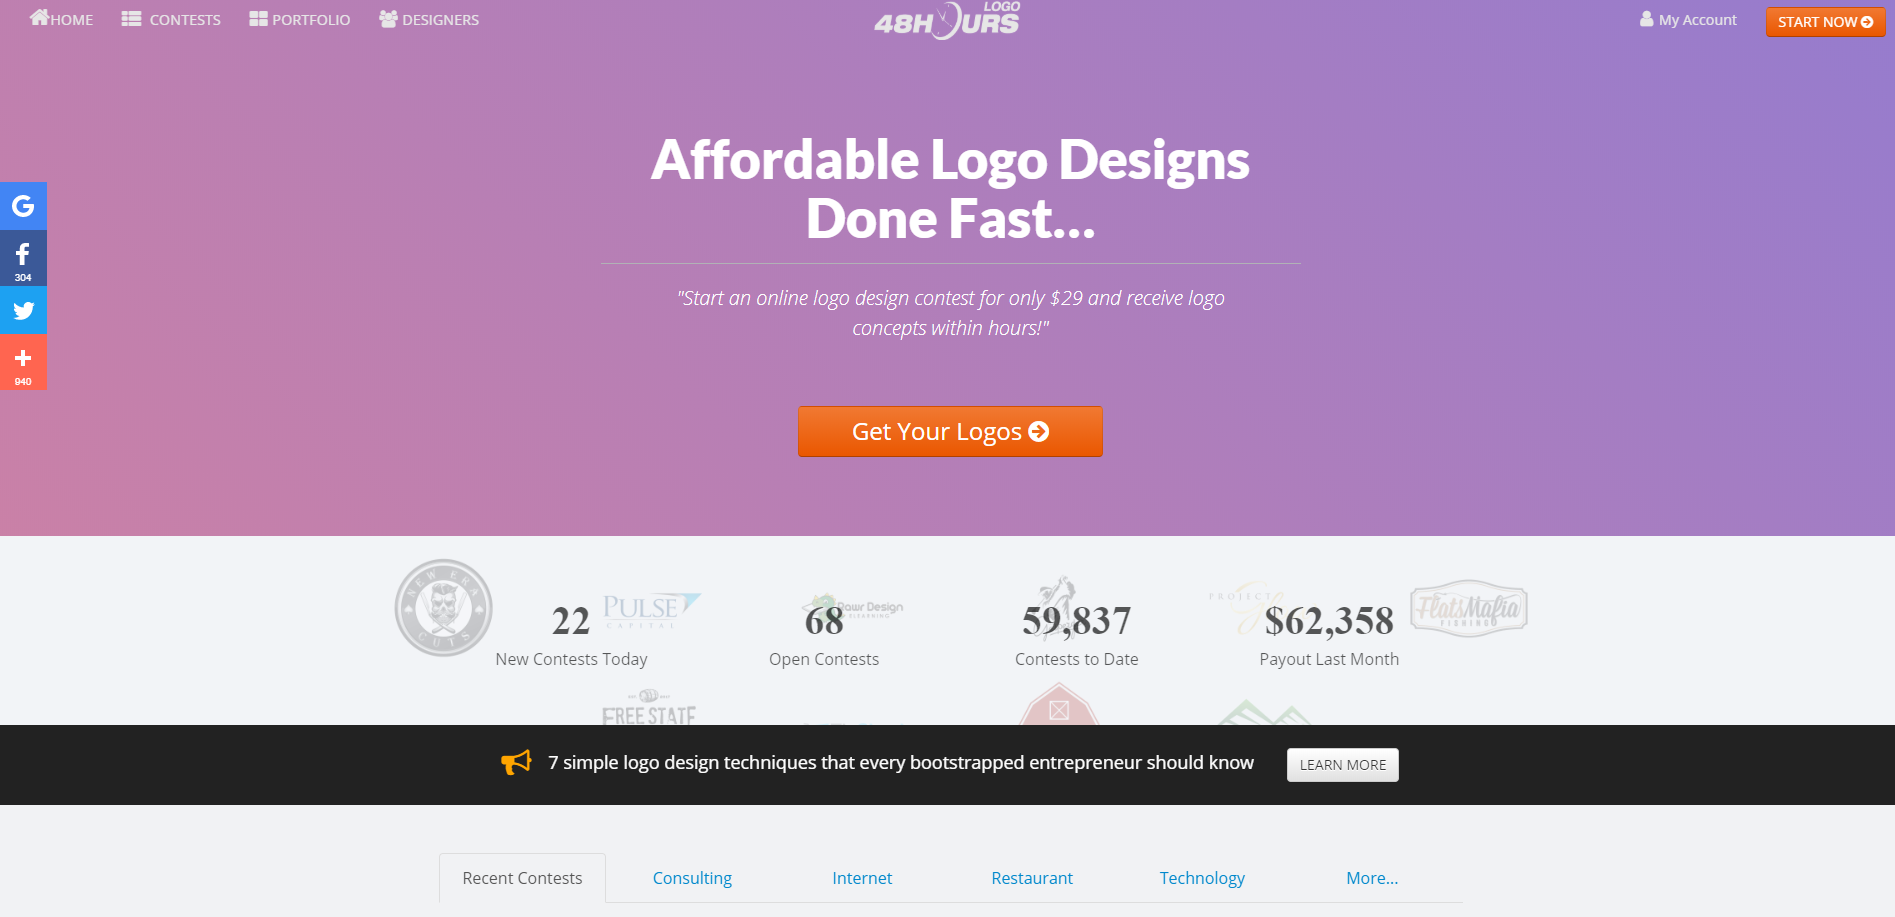 48HoursLogo – Affordable Logos Done Fast